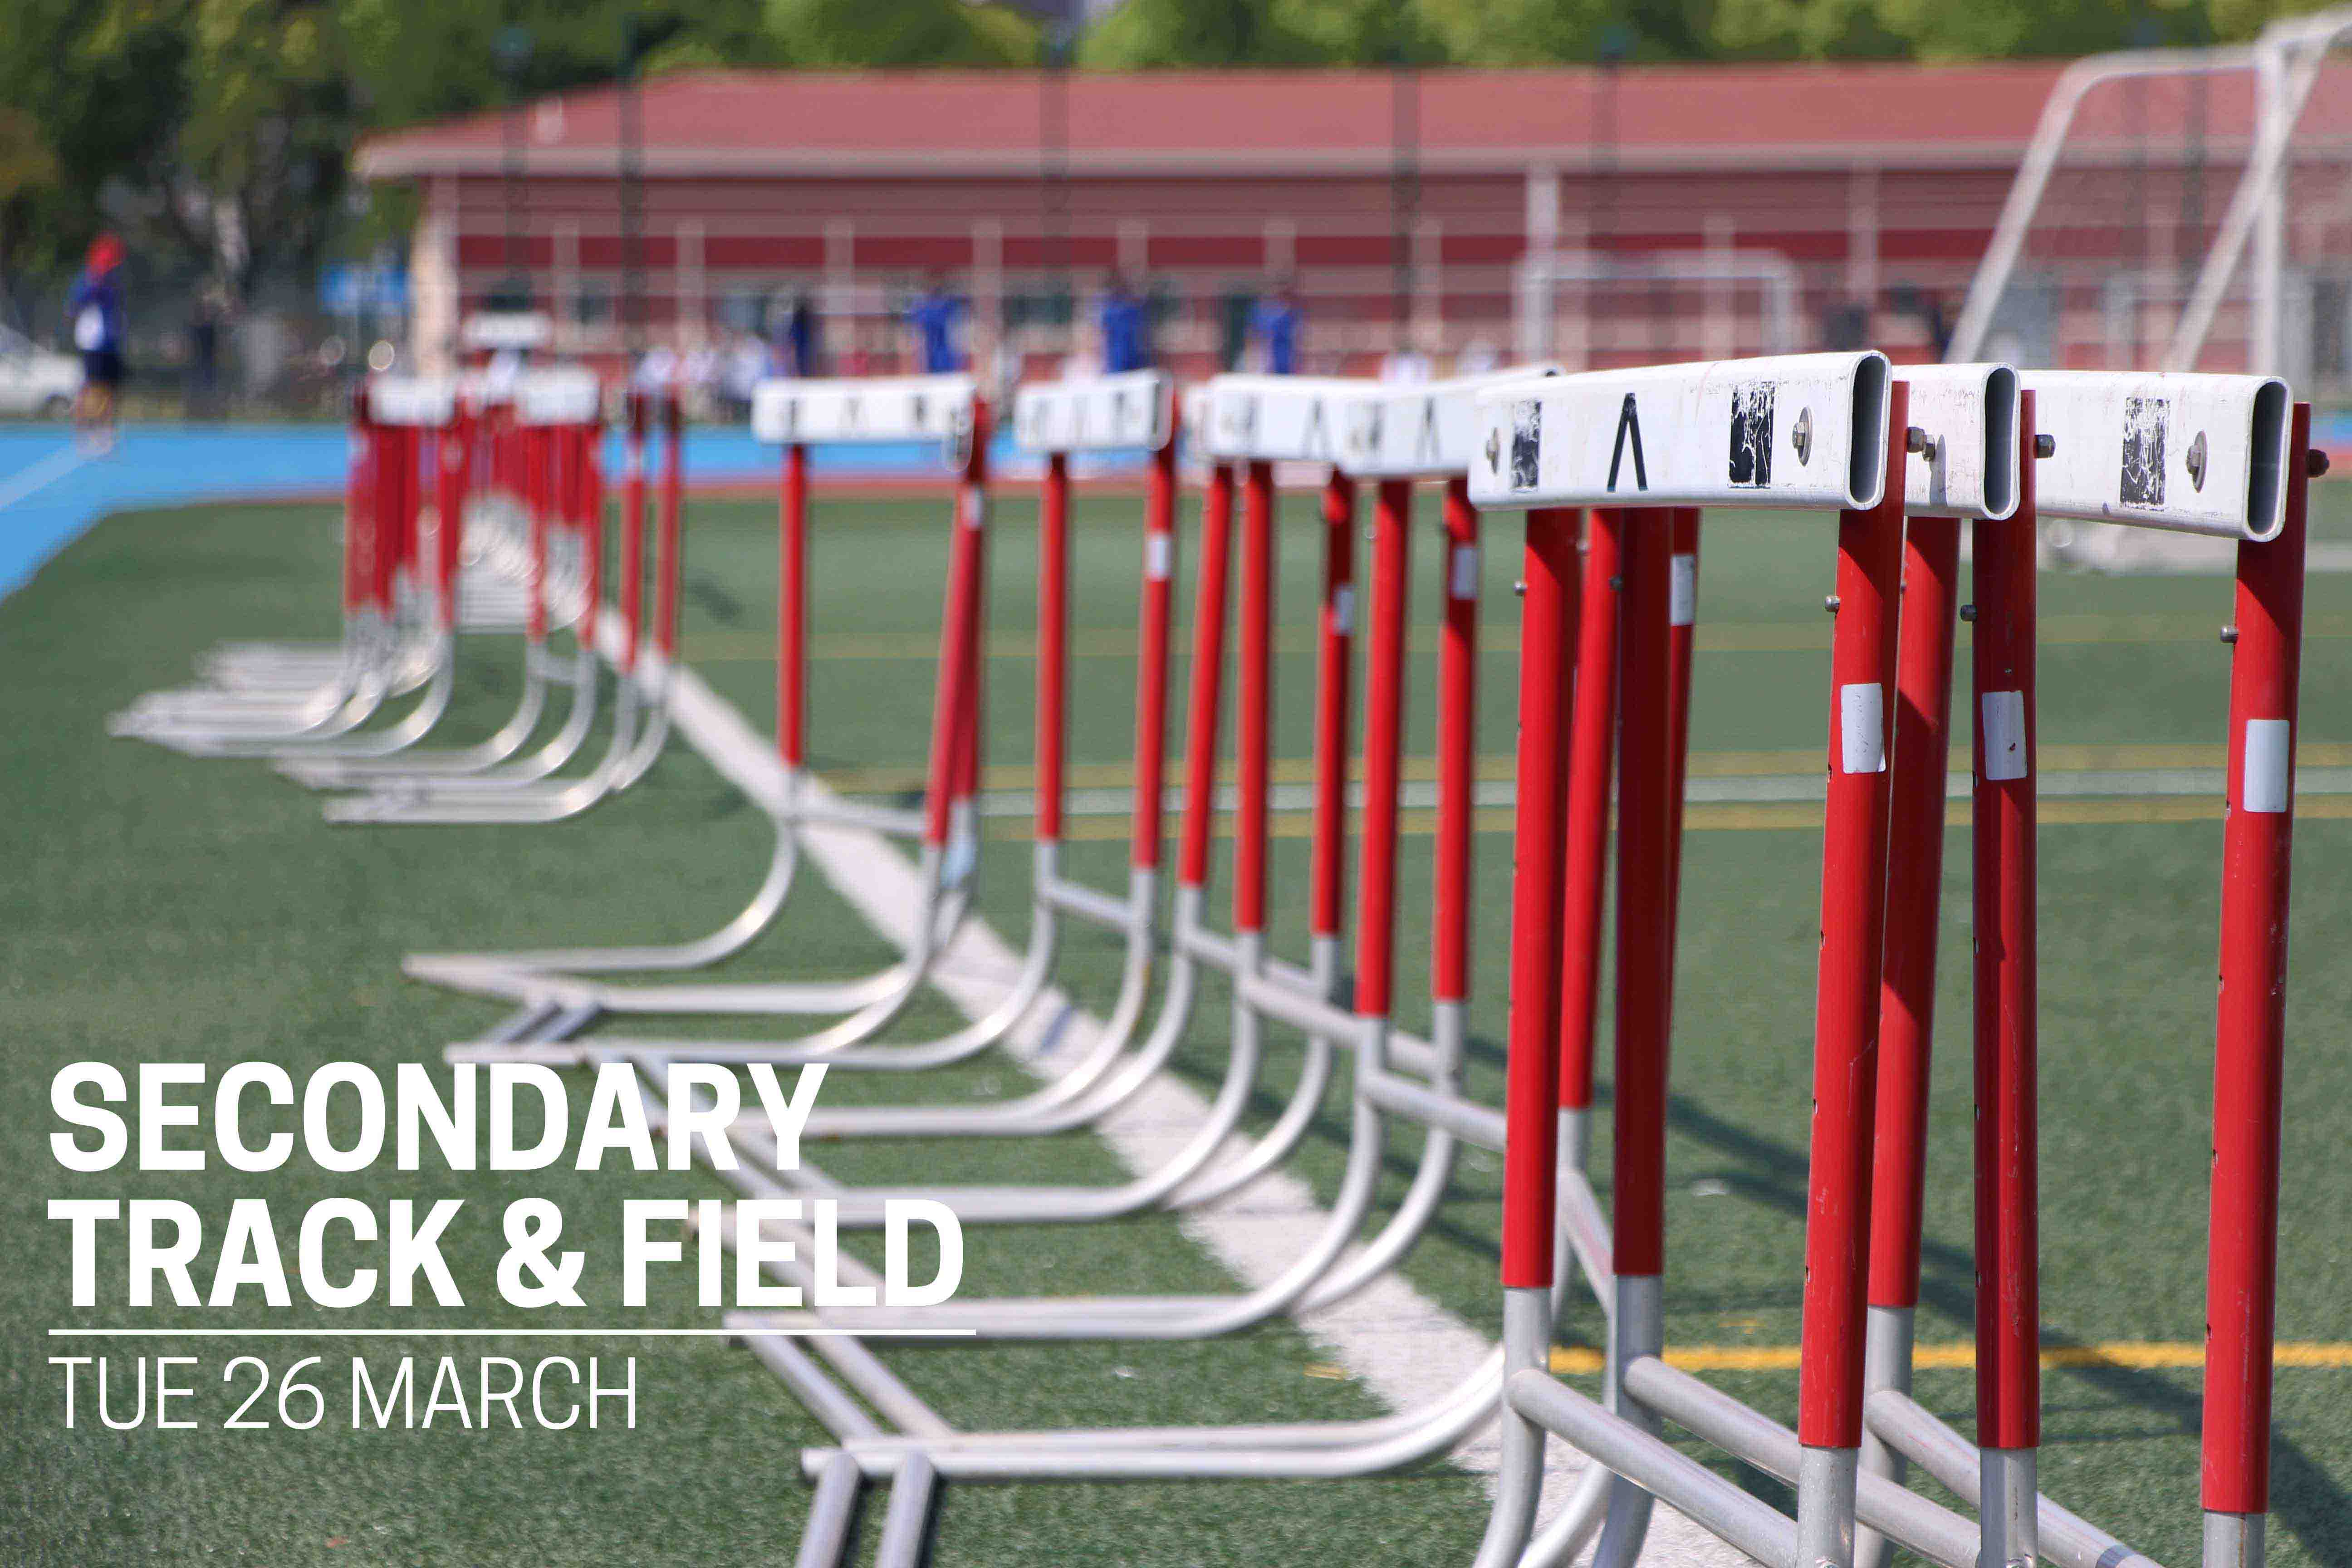 Secondary Track & Field Day